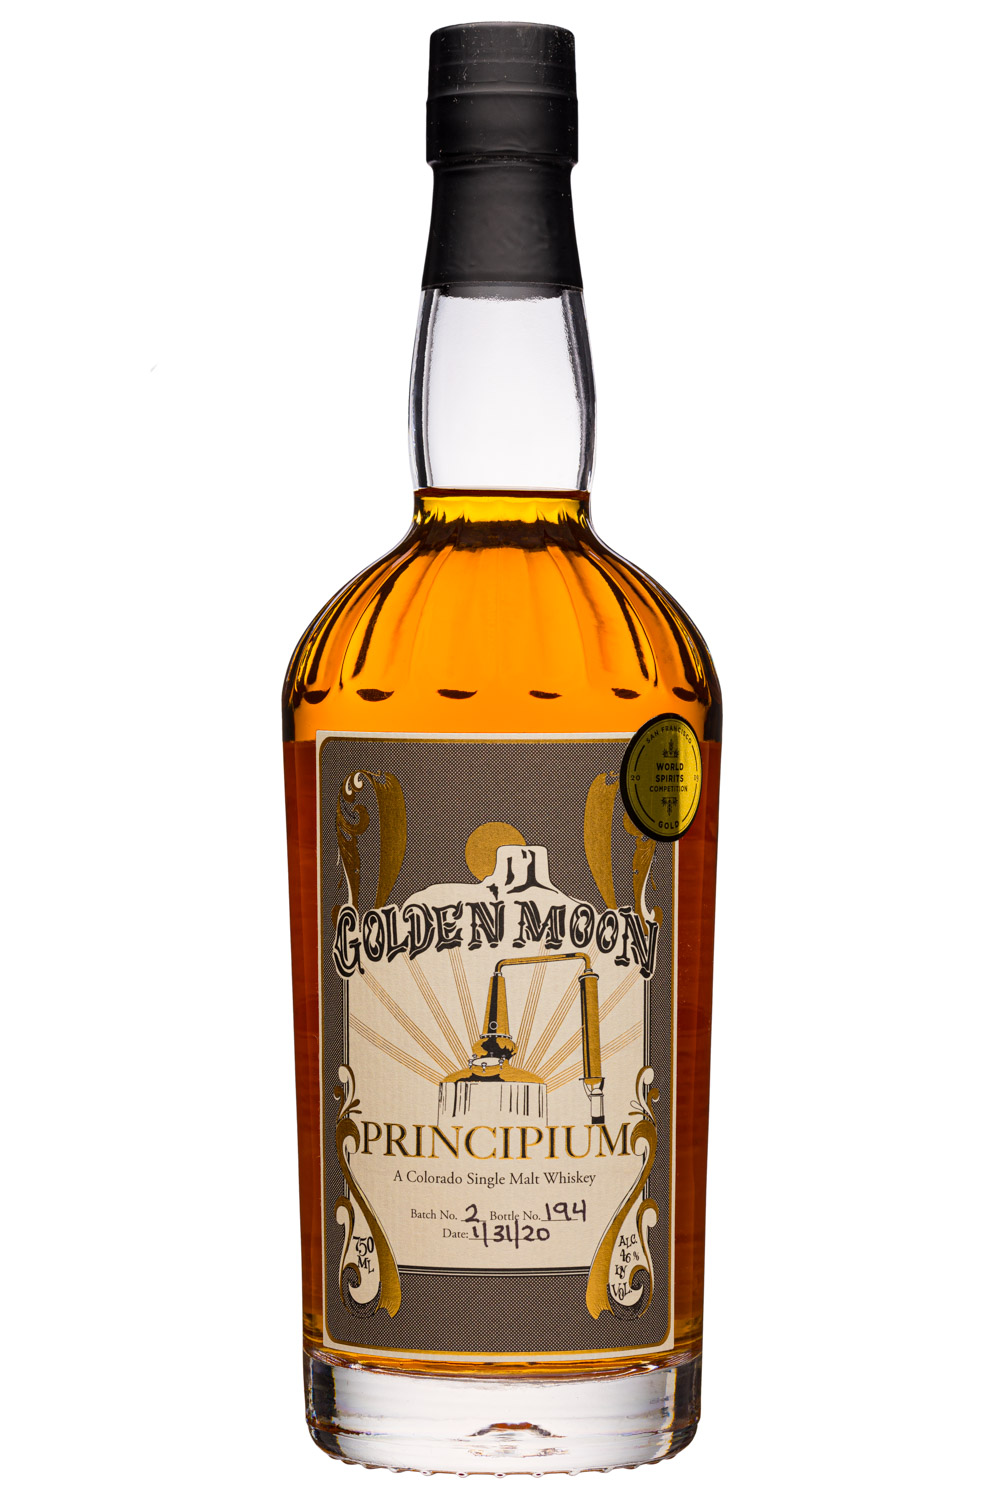 Golden Moon Distillery: GoldenMoon-750ml-Principium